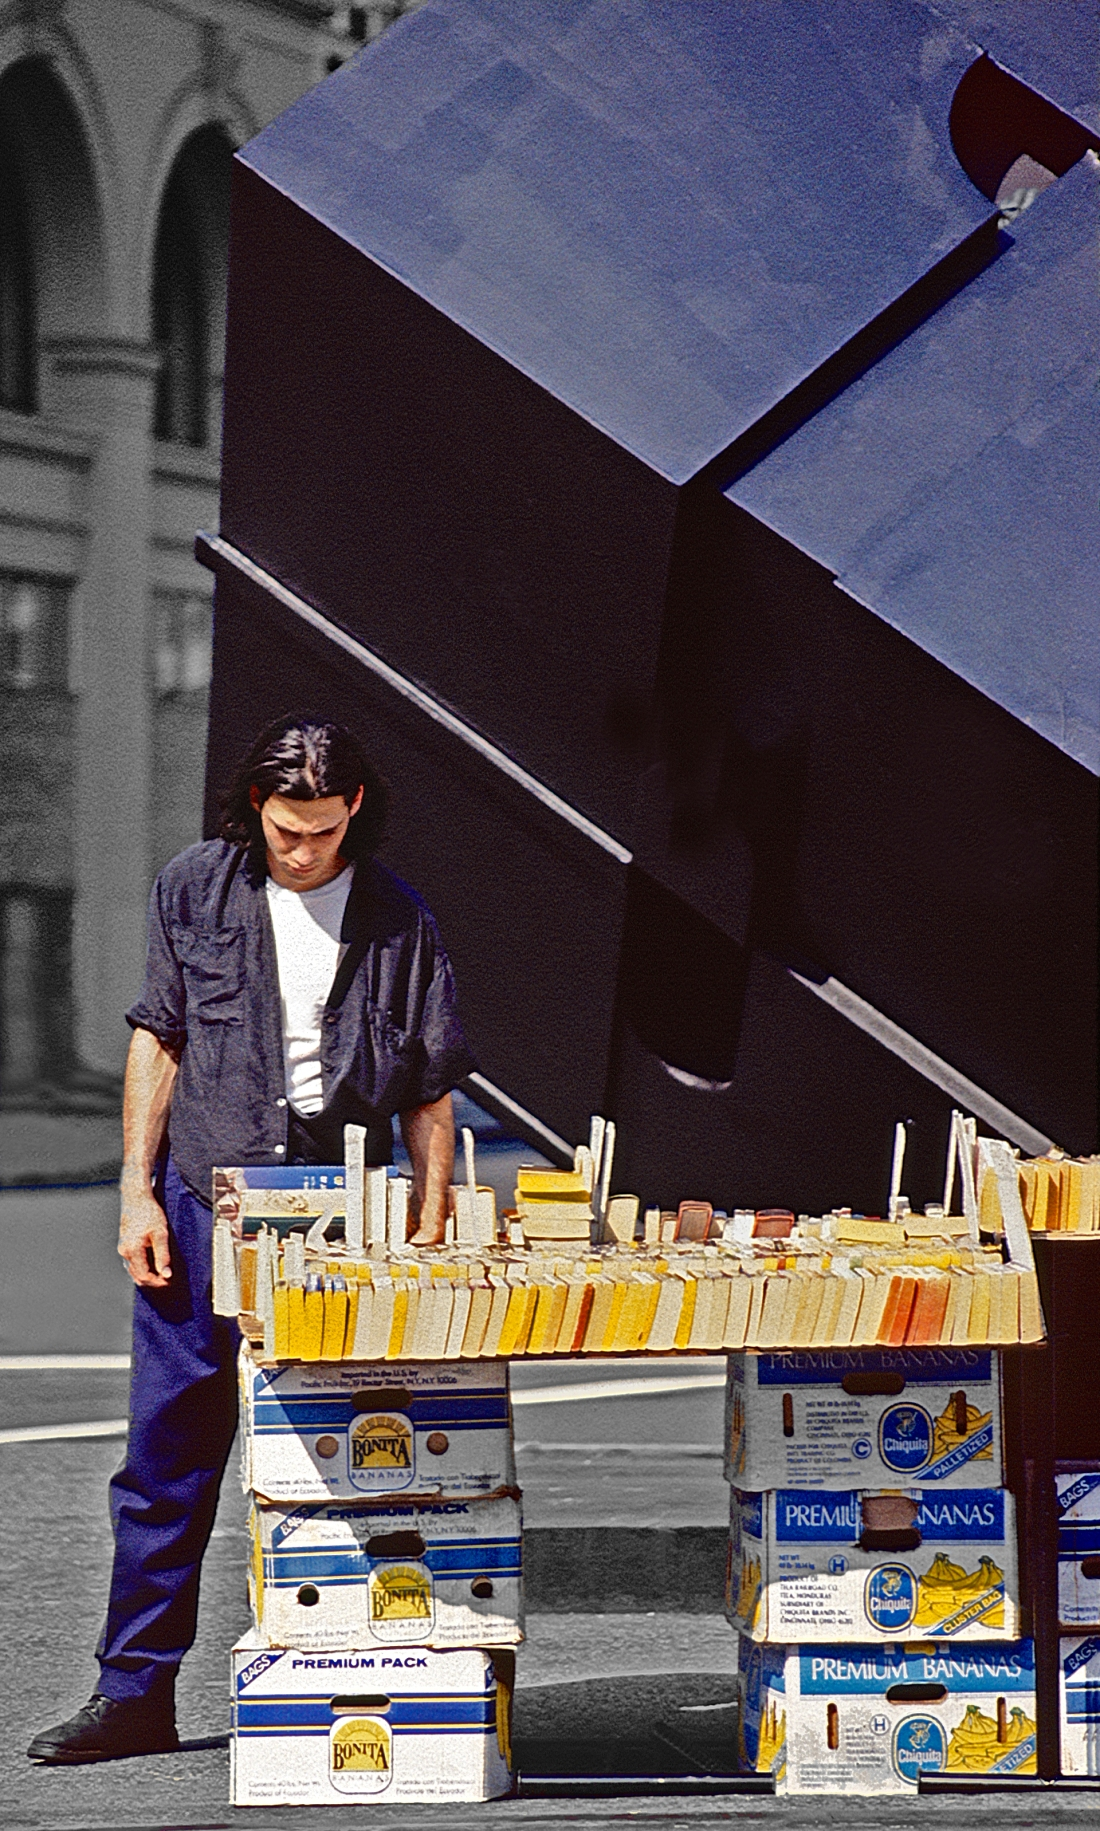 Bookseller and The Cube, Astor Place